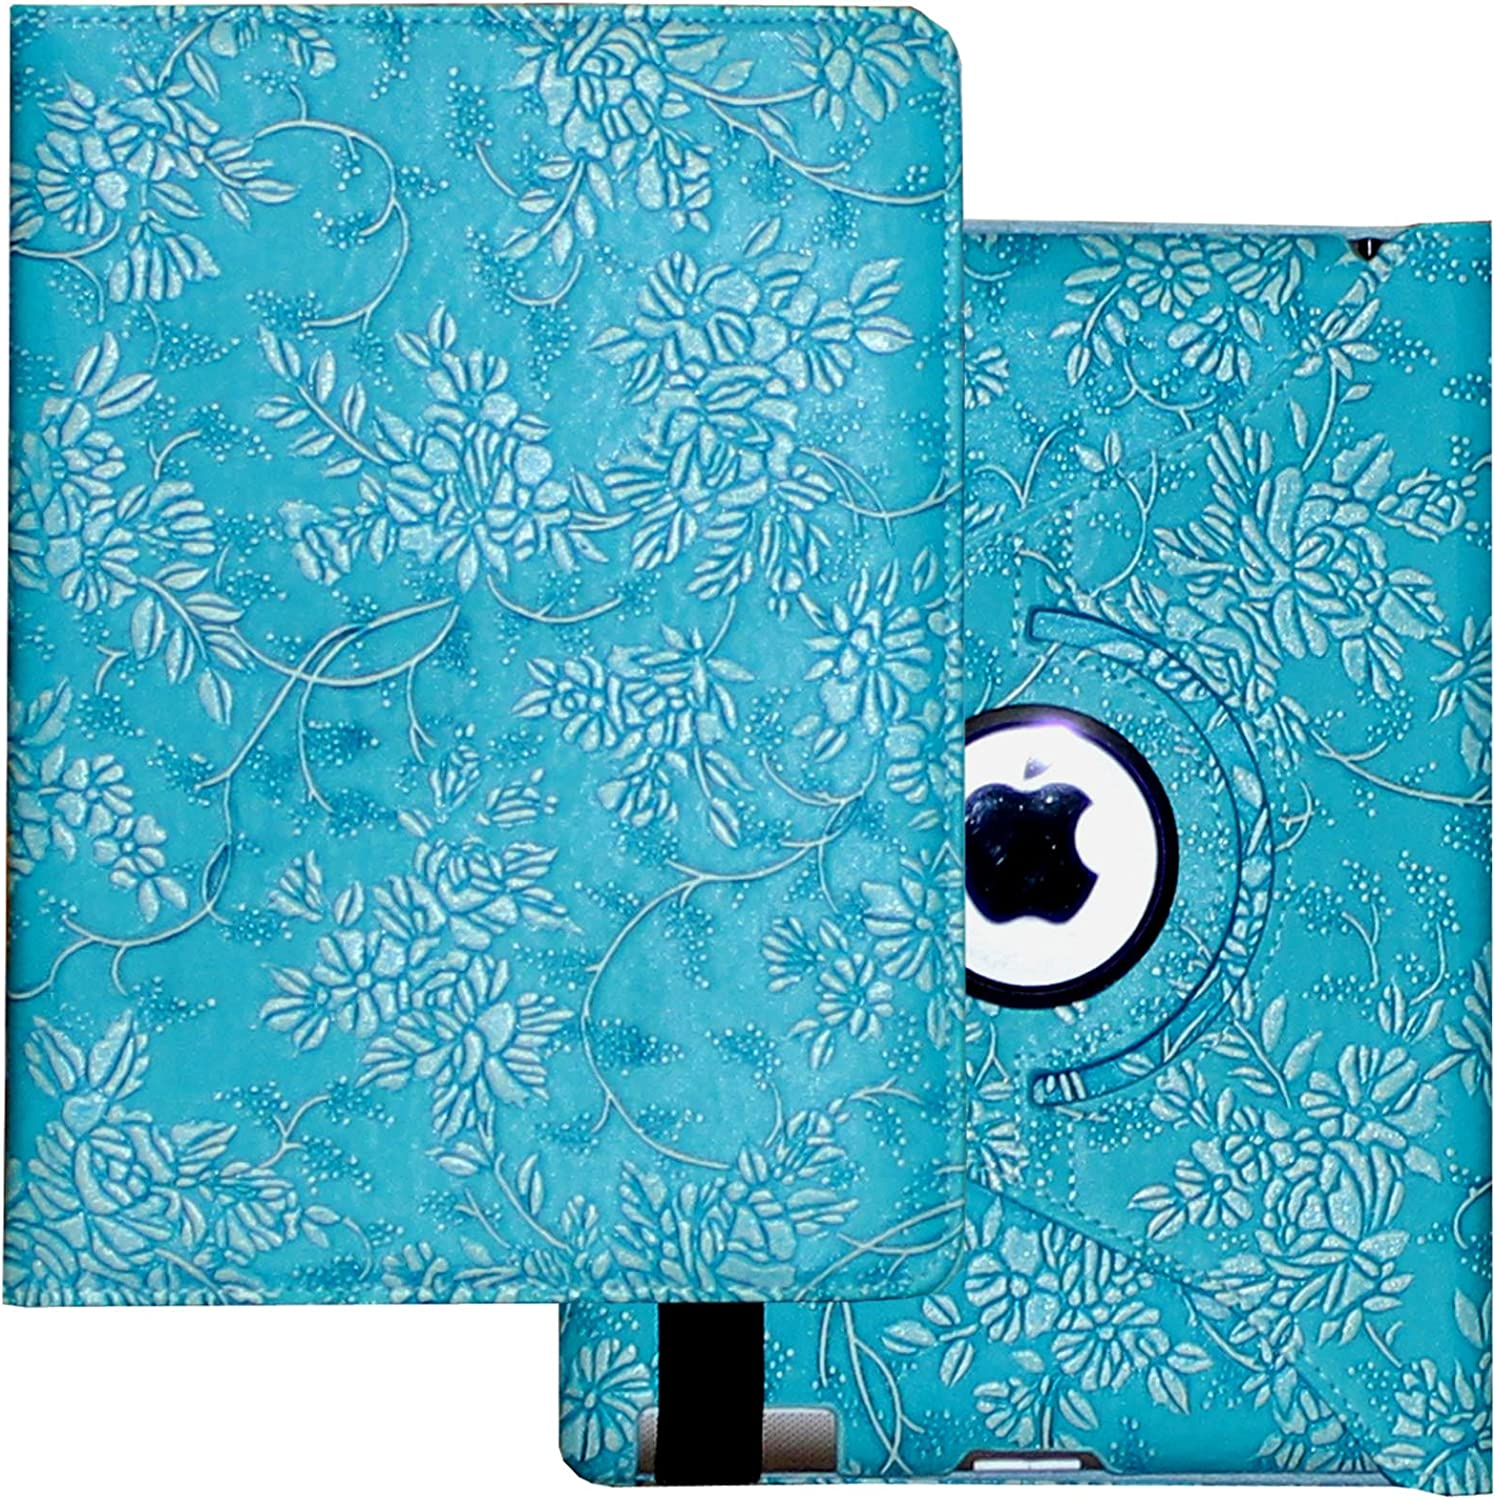 Lingsor Case for iPad 2nd 3rd 4th Generation, Fit Model A1395 A1396 A1397 A1416 A1430 A1403 A1458 A1459 A1460 Smart Cover Case Rotating Stand Support Wake up Sleep, Embossed Blue Flower